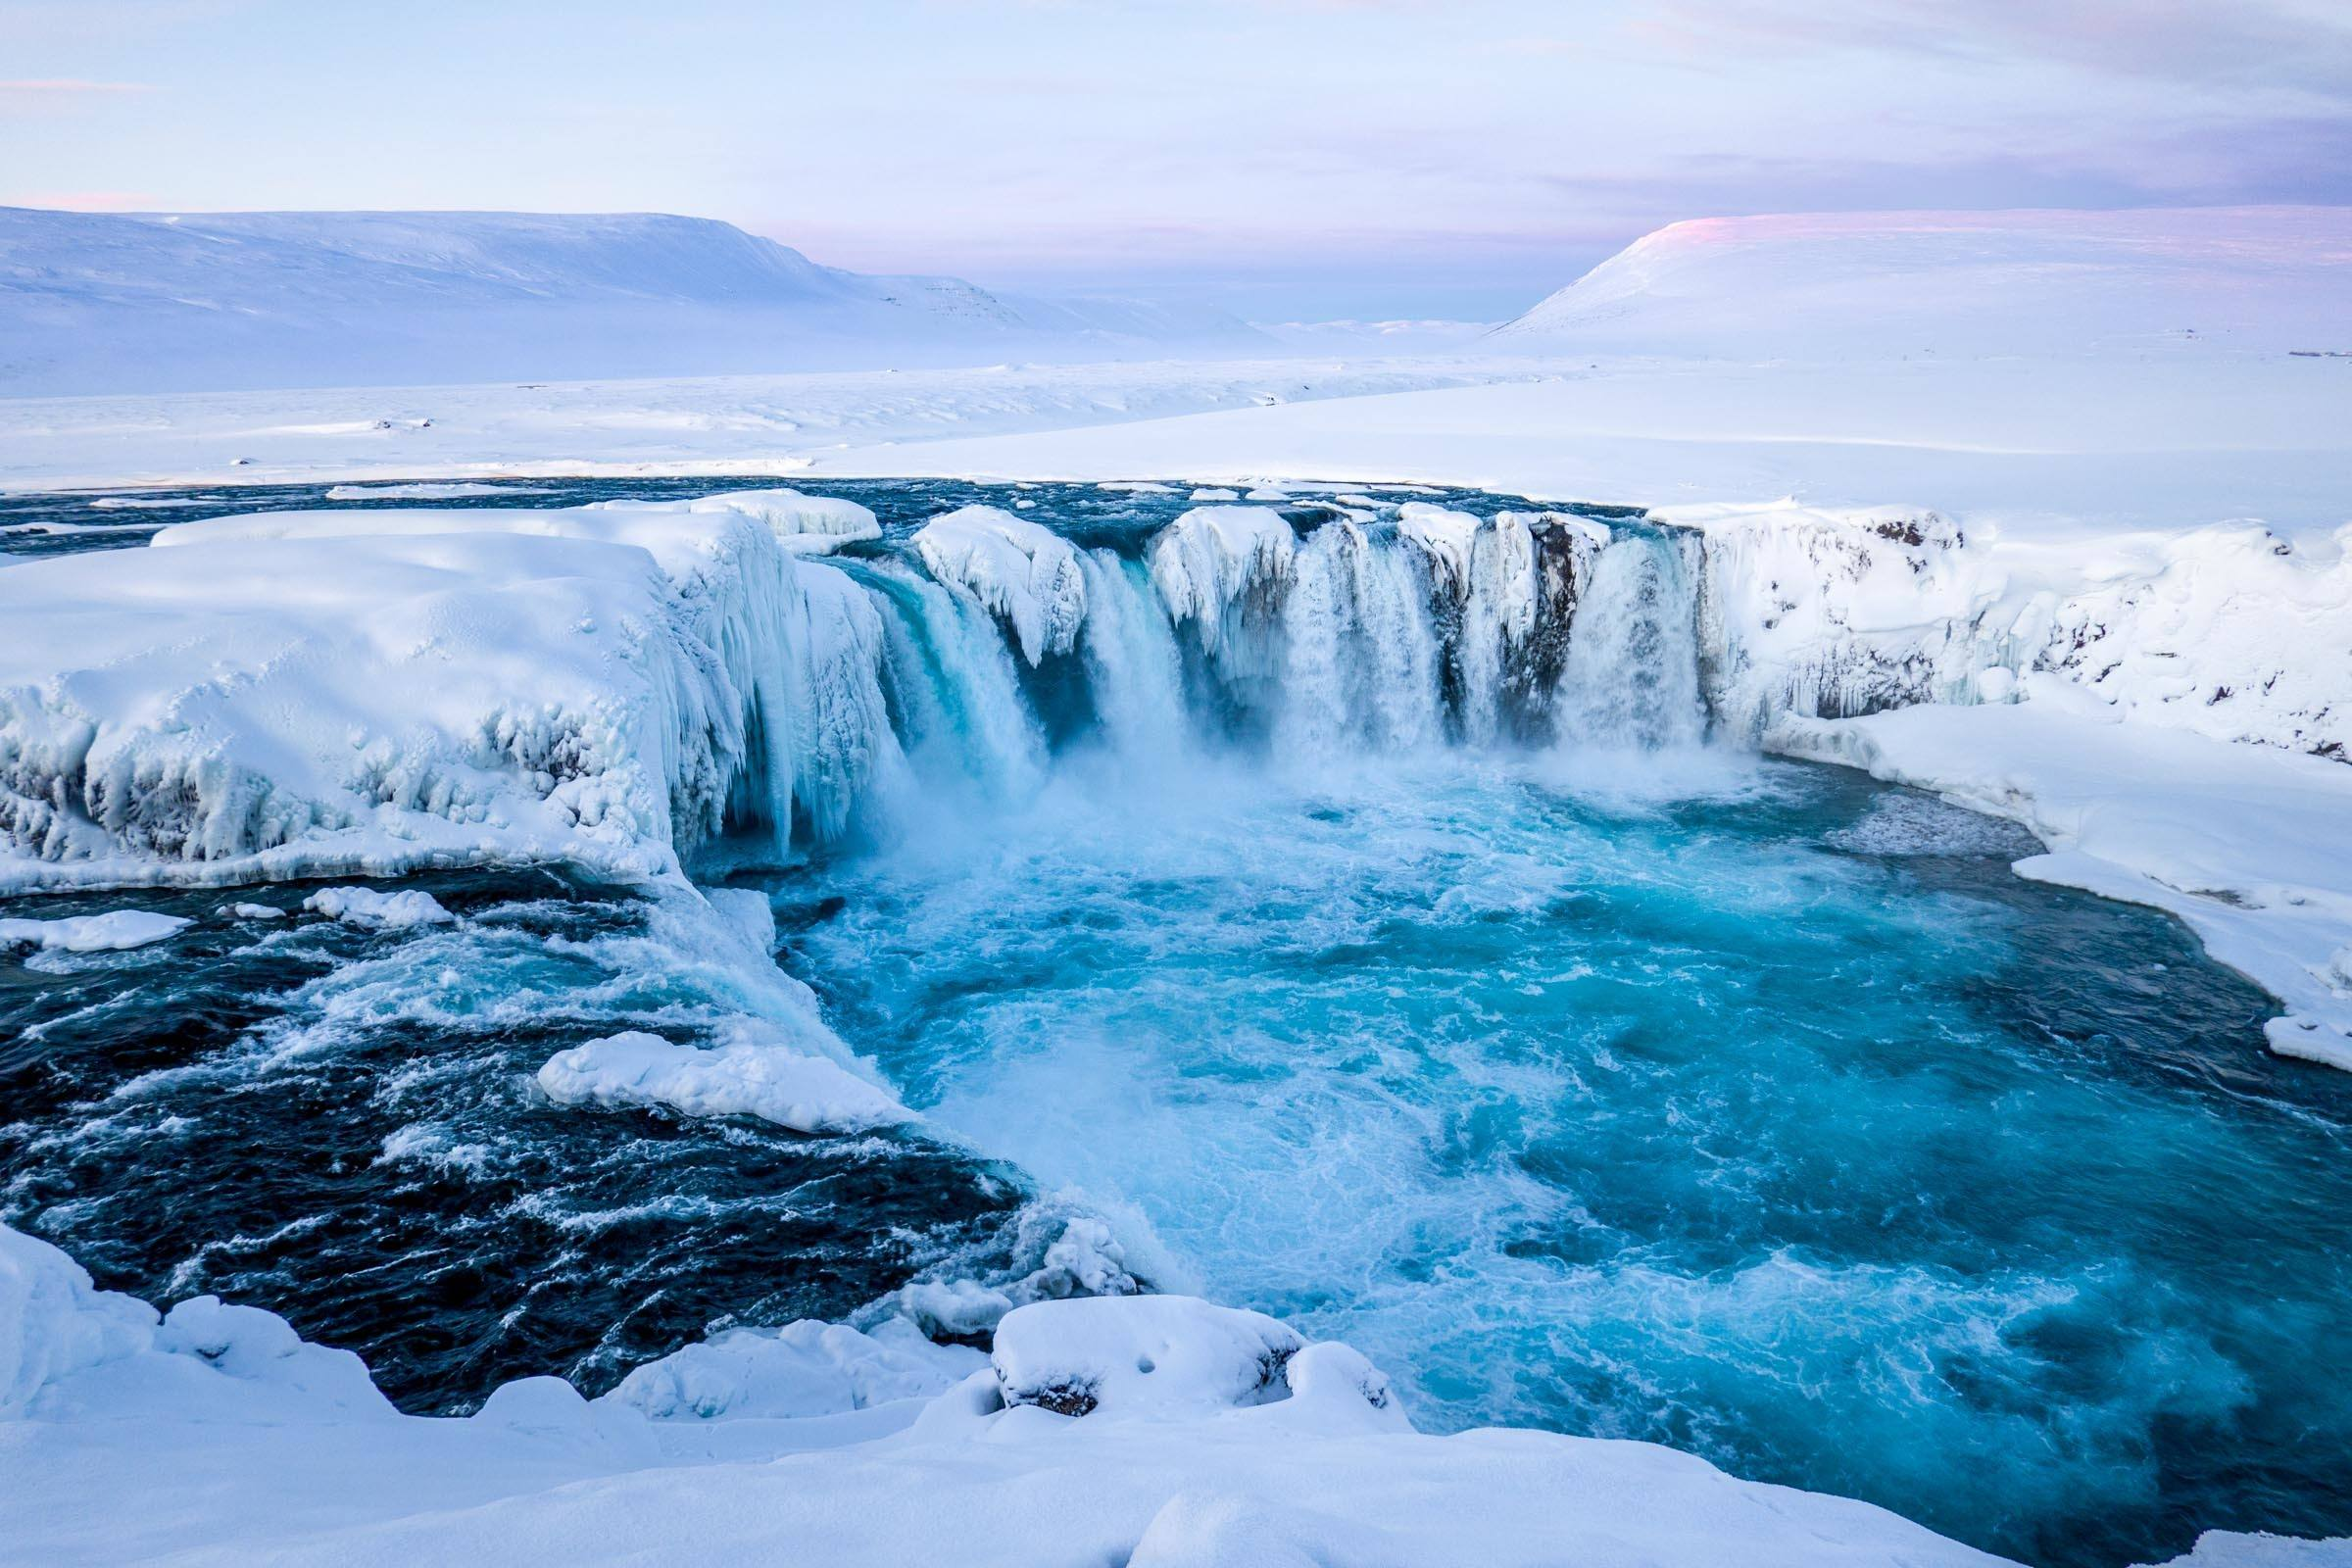 Iceland is beautiful and mysterious. For us, winter may be the best time to visit Iceland. The short days of daylight play tricks on the ice and the snow, like the Godafoss waterfall in the north.